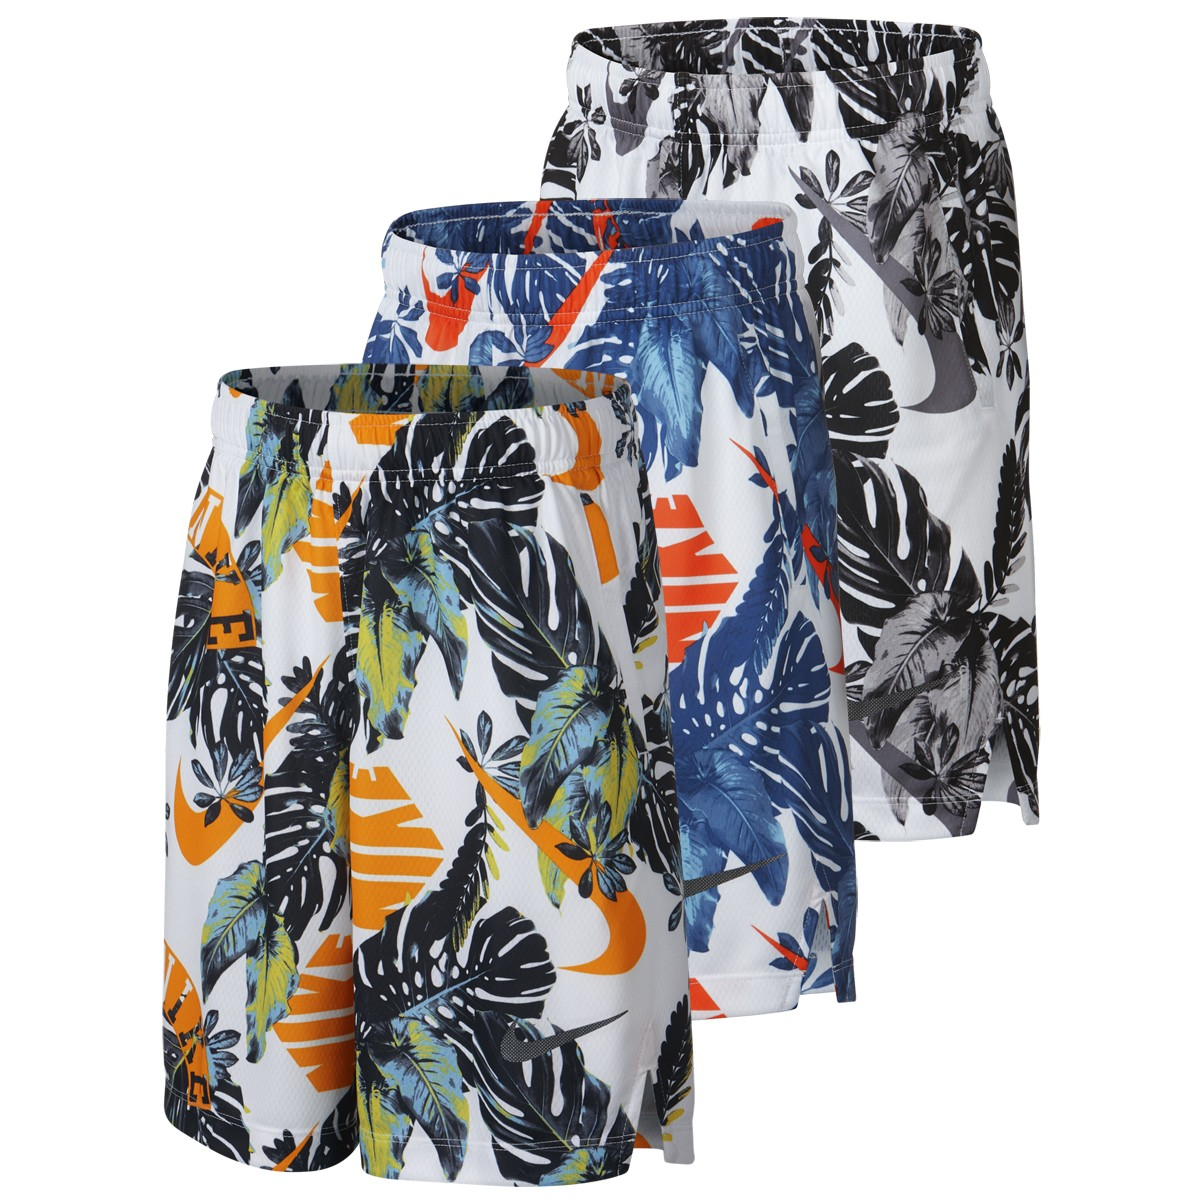 Junior Nike Dri Fit Printed Shorts Nike Juniors